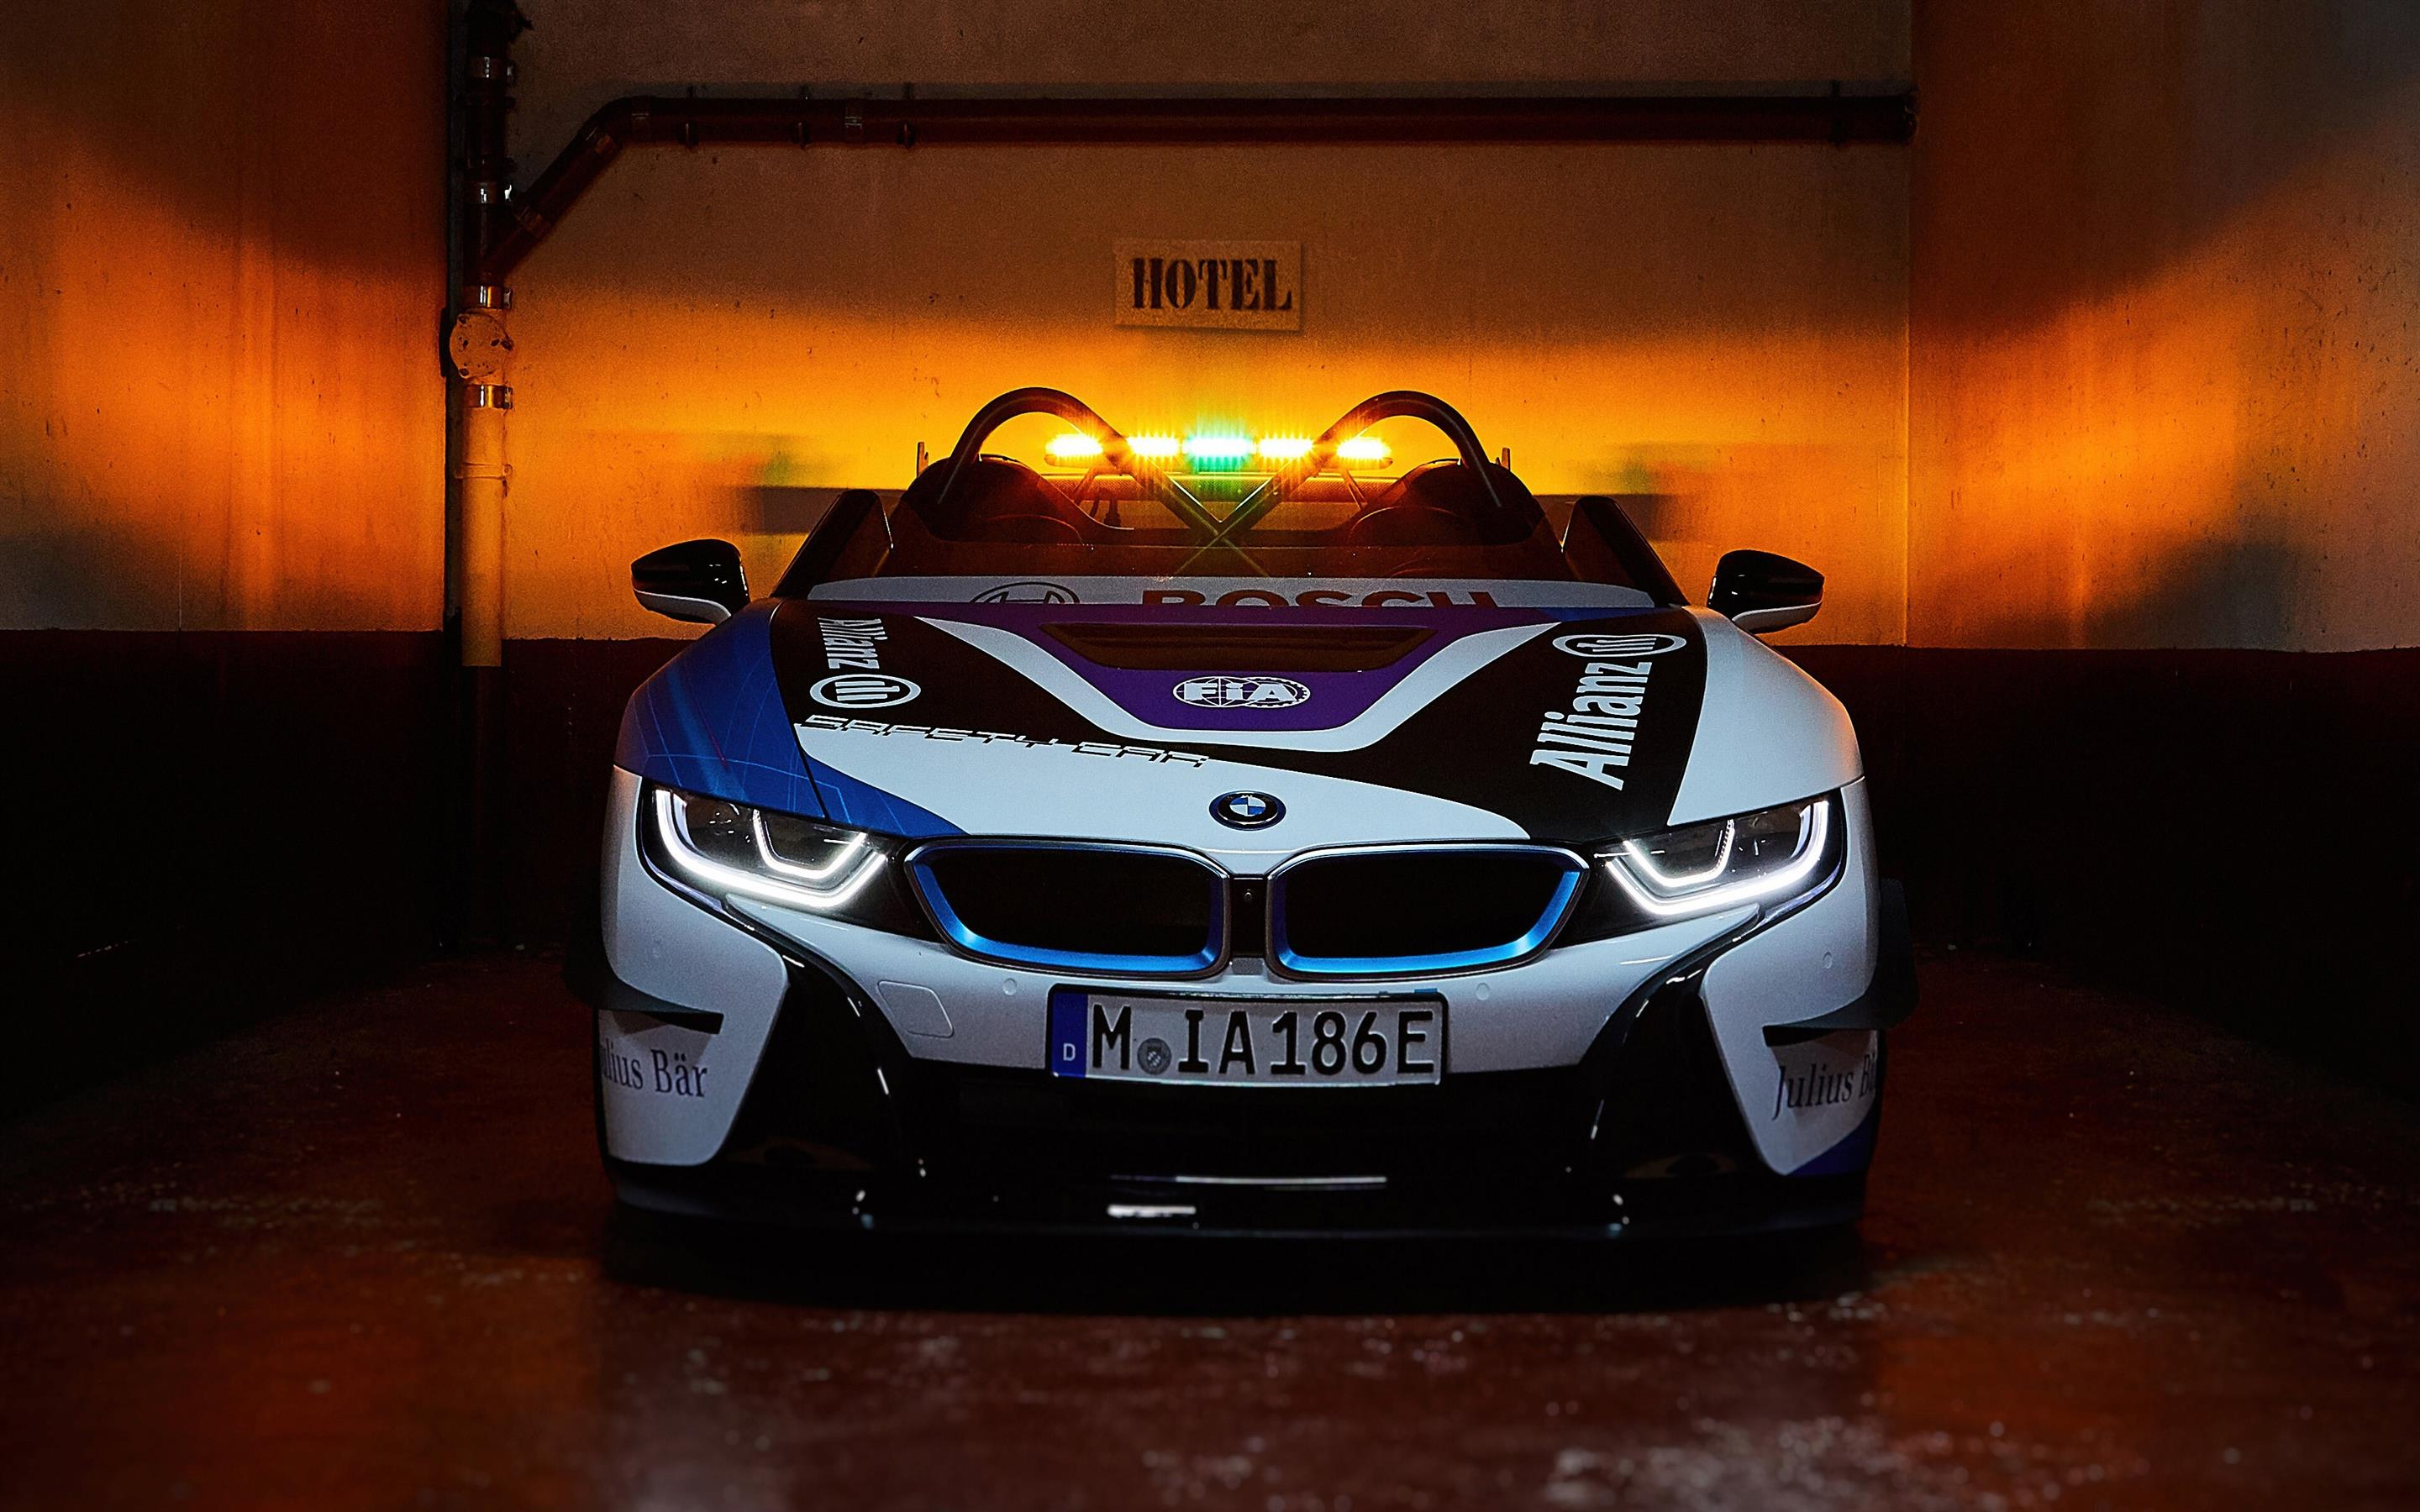 2880x1800 4K Wallpaper of BMW I8 Roadster Formula E Safety Car